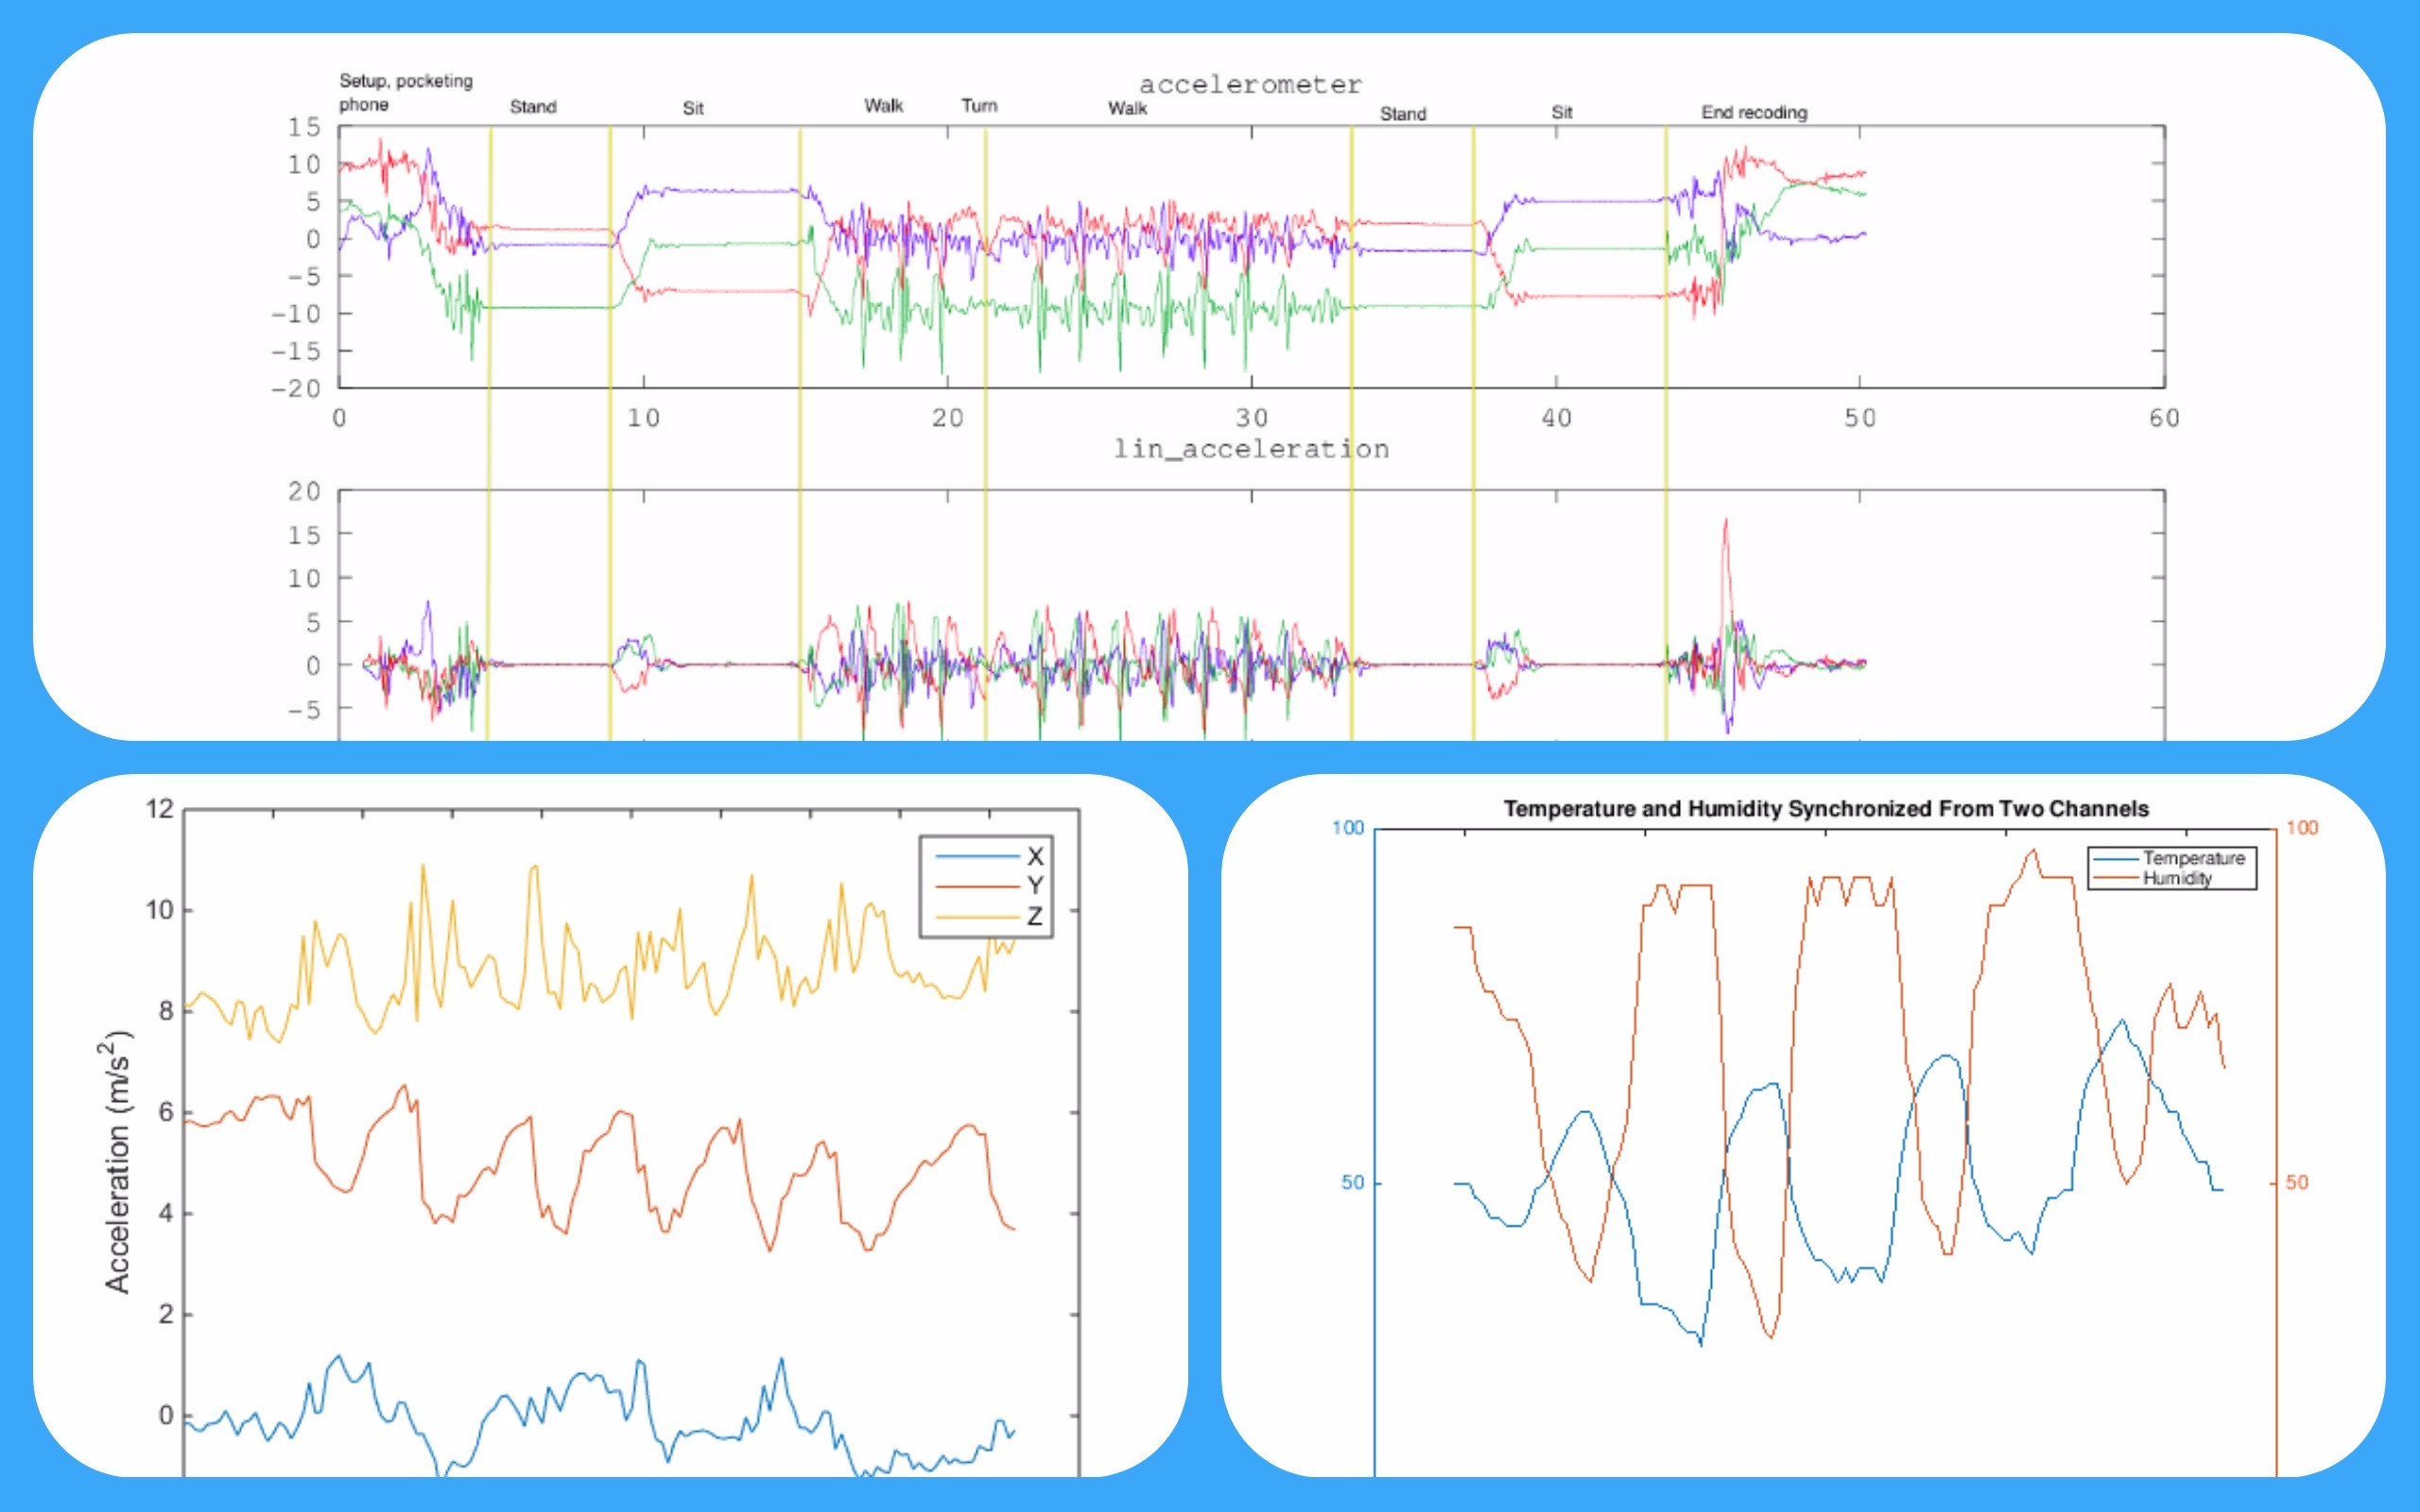 Analyzing Sensor Data on PSLab